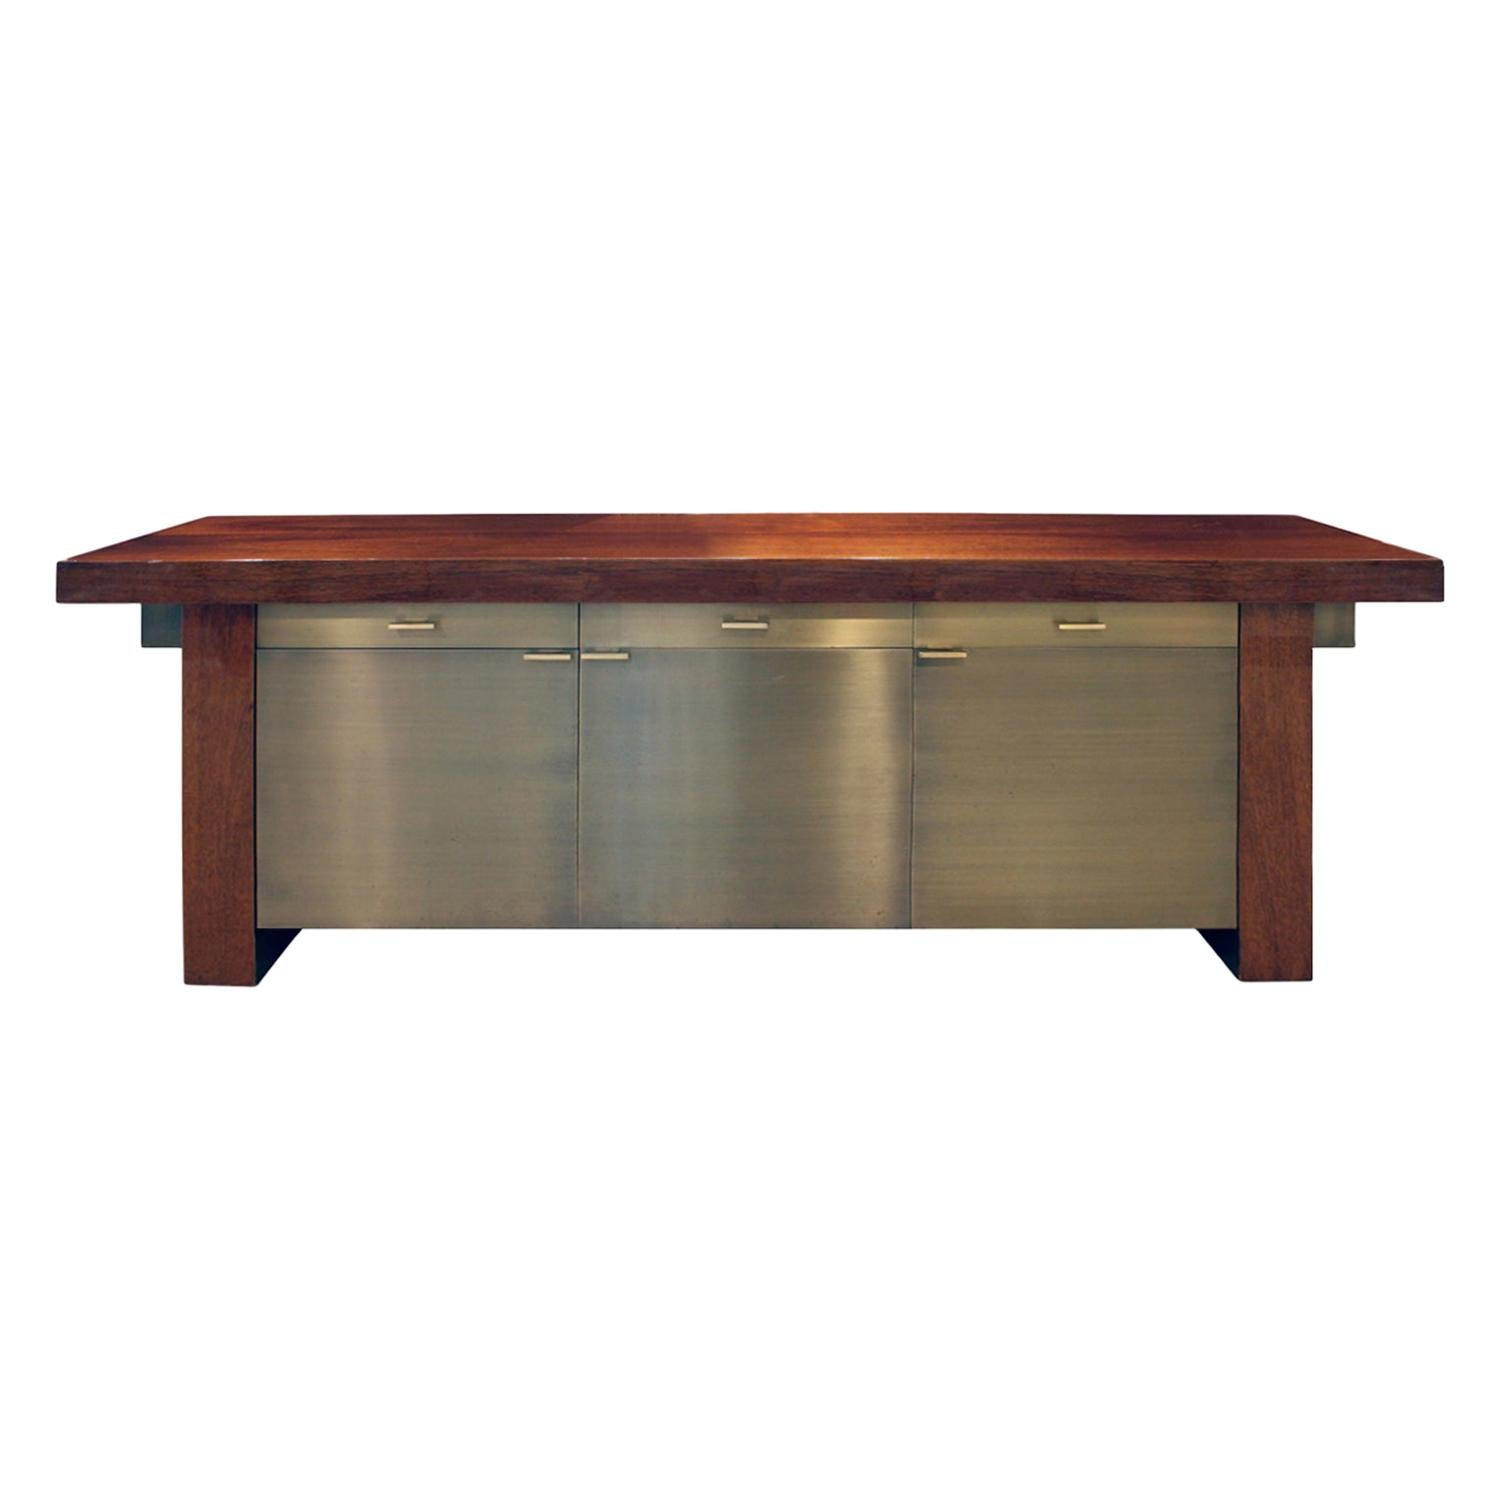 Karl Springer Credenza in Lacquered Mahogany with Oxidized Bronze Doors, 1980s